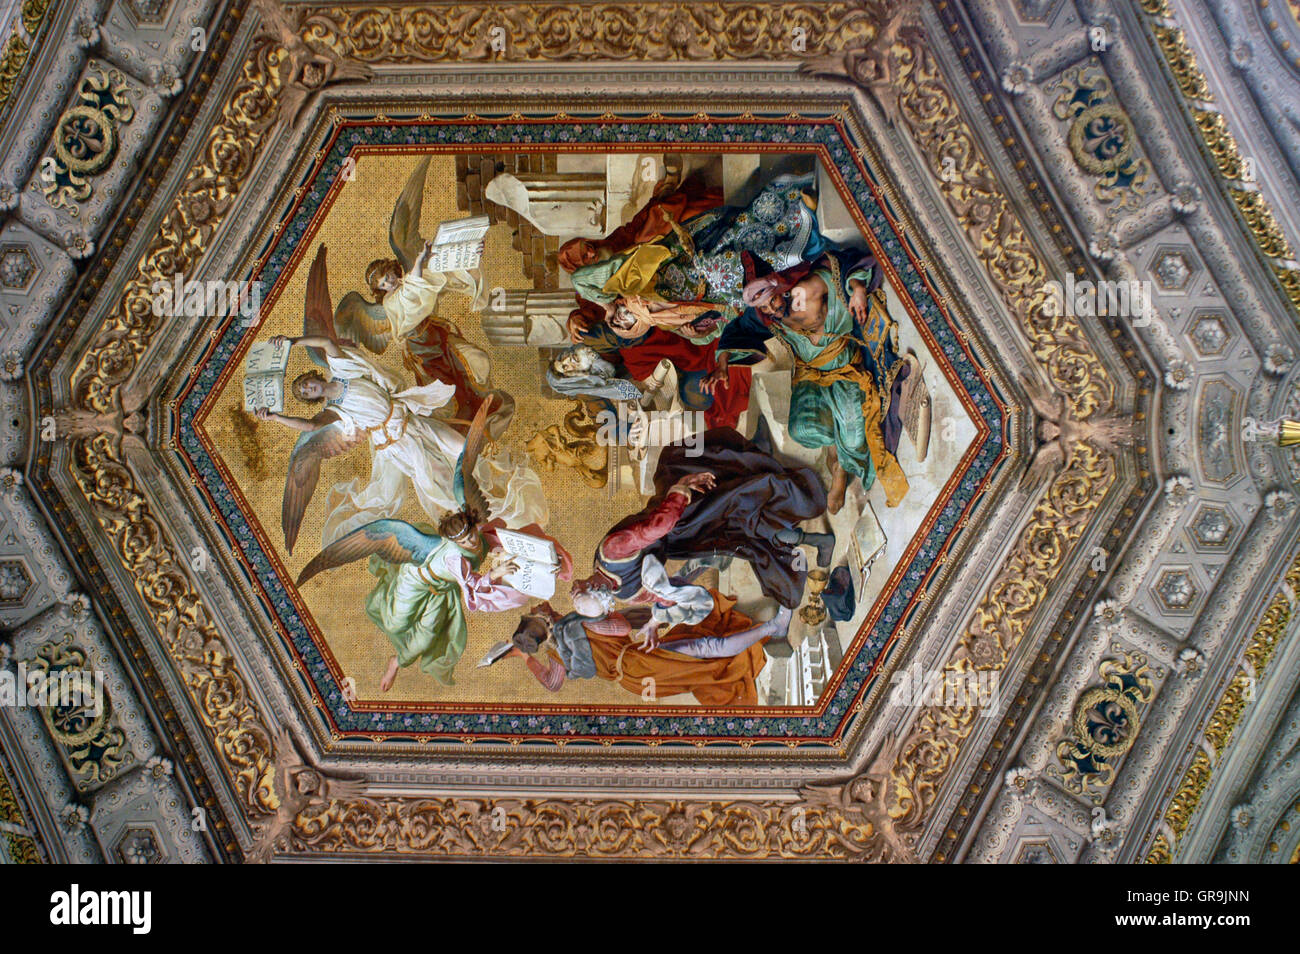 Ceiling paintings in Vatican museum Italy Ornate roof in the